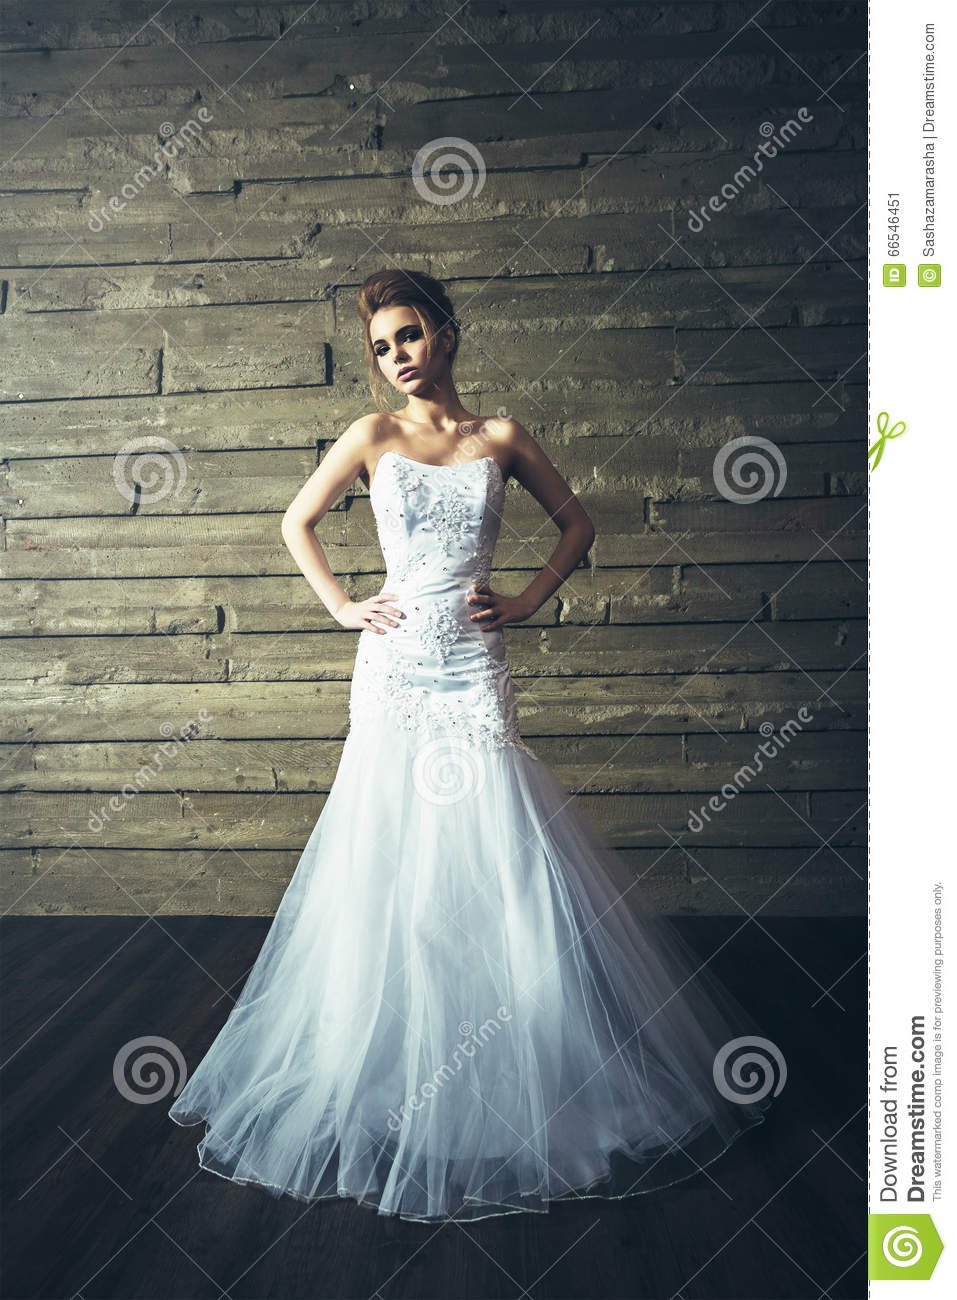 Young Beautiful Bride In White Wedding Dress With Hairstyle And